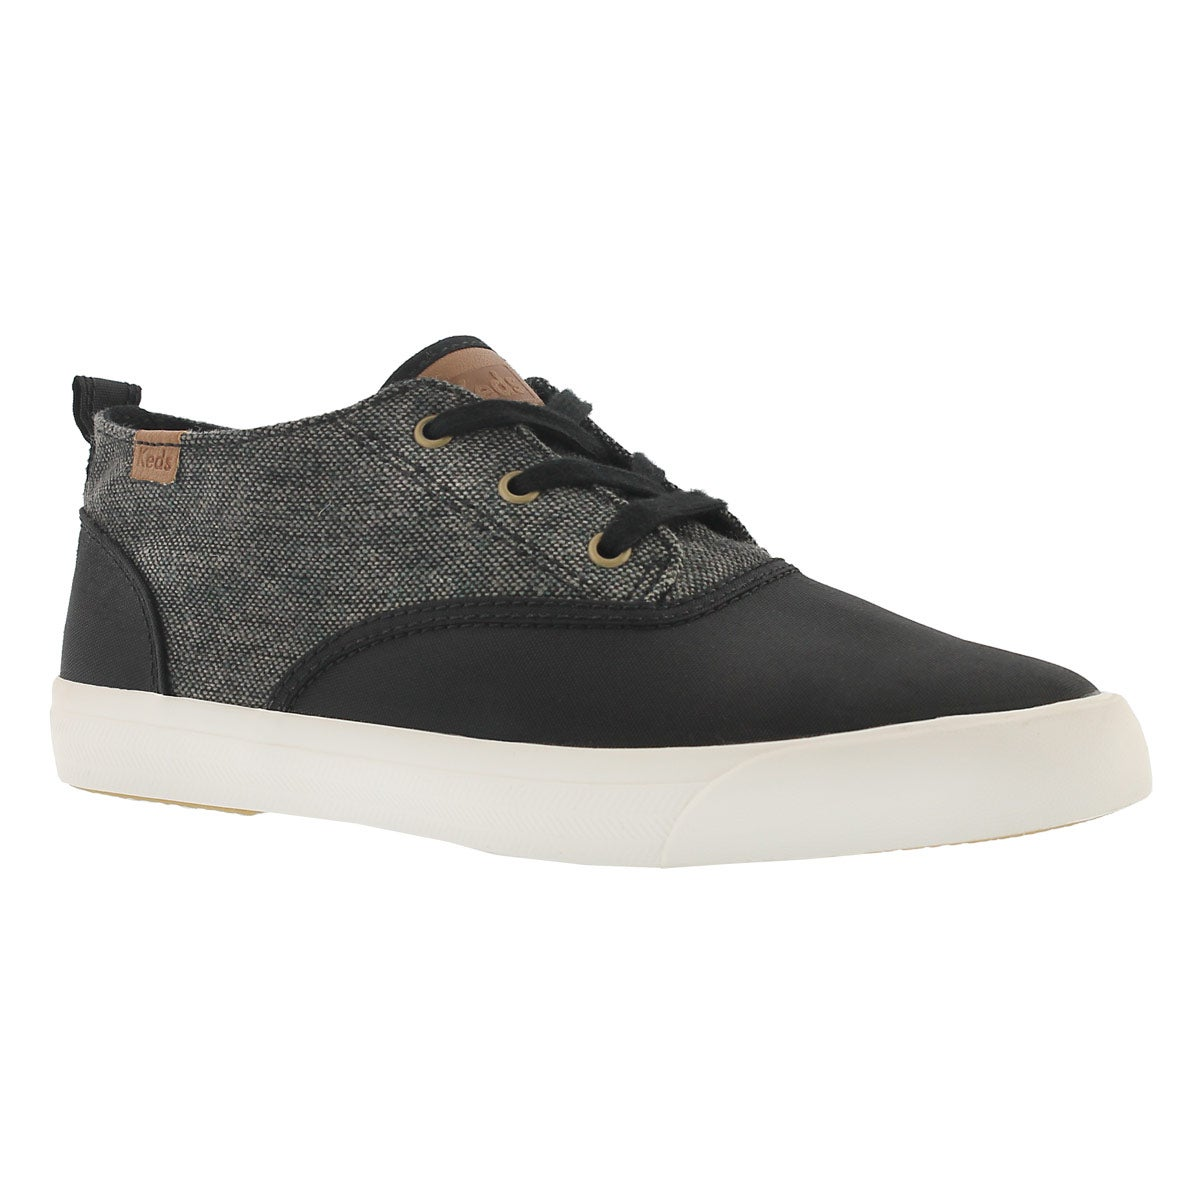 Women's TRIUMPH MID dark grey lace up sneakers